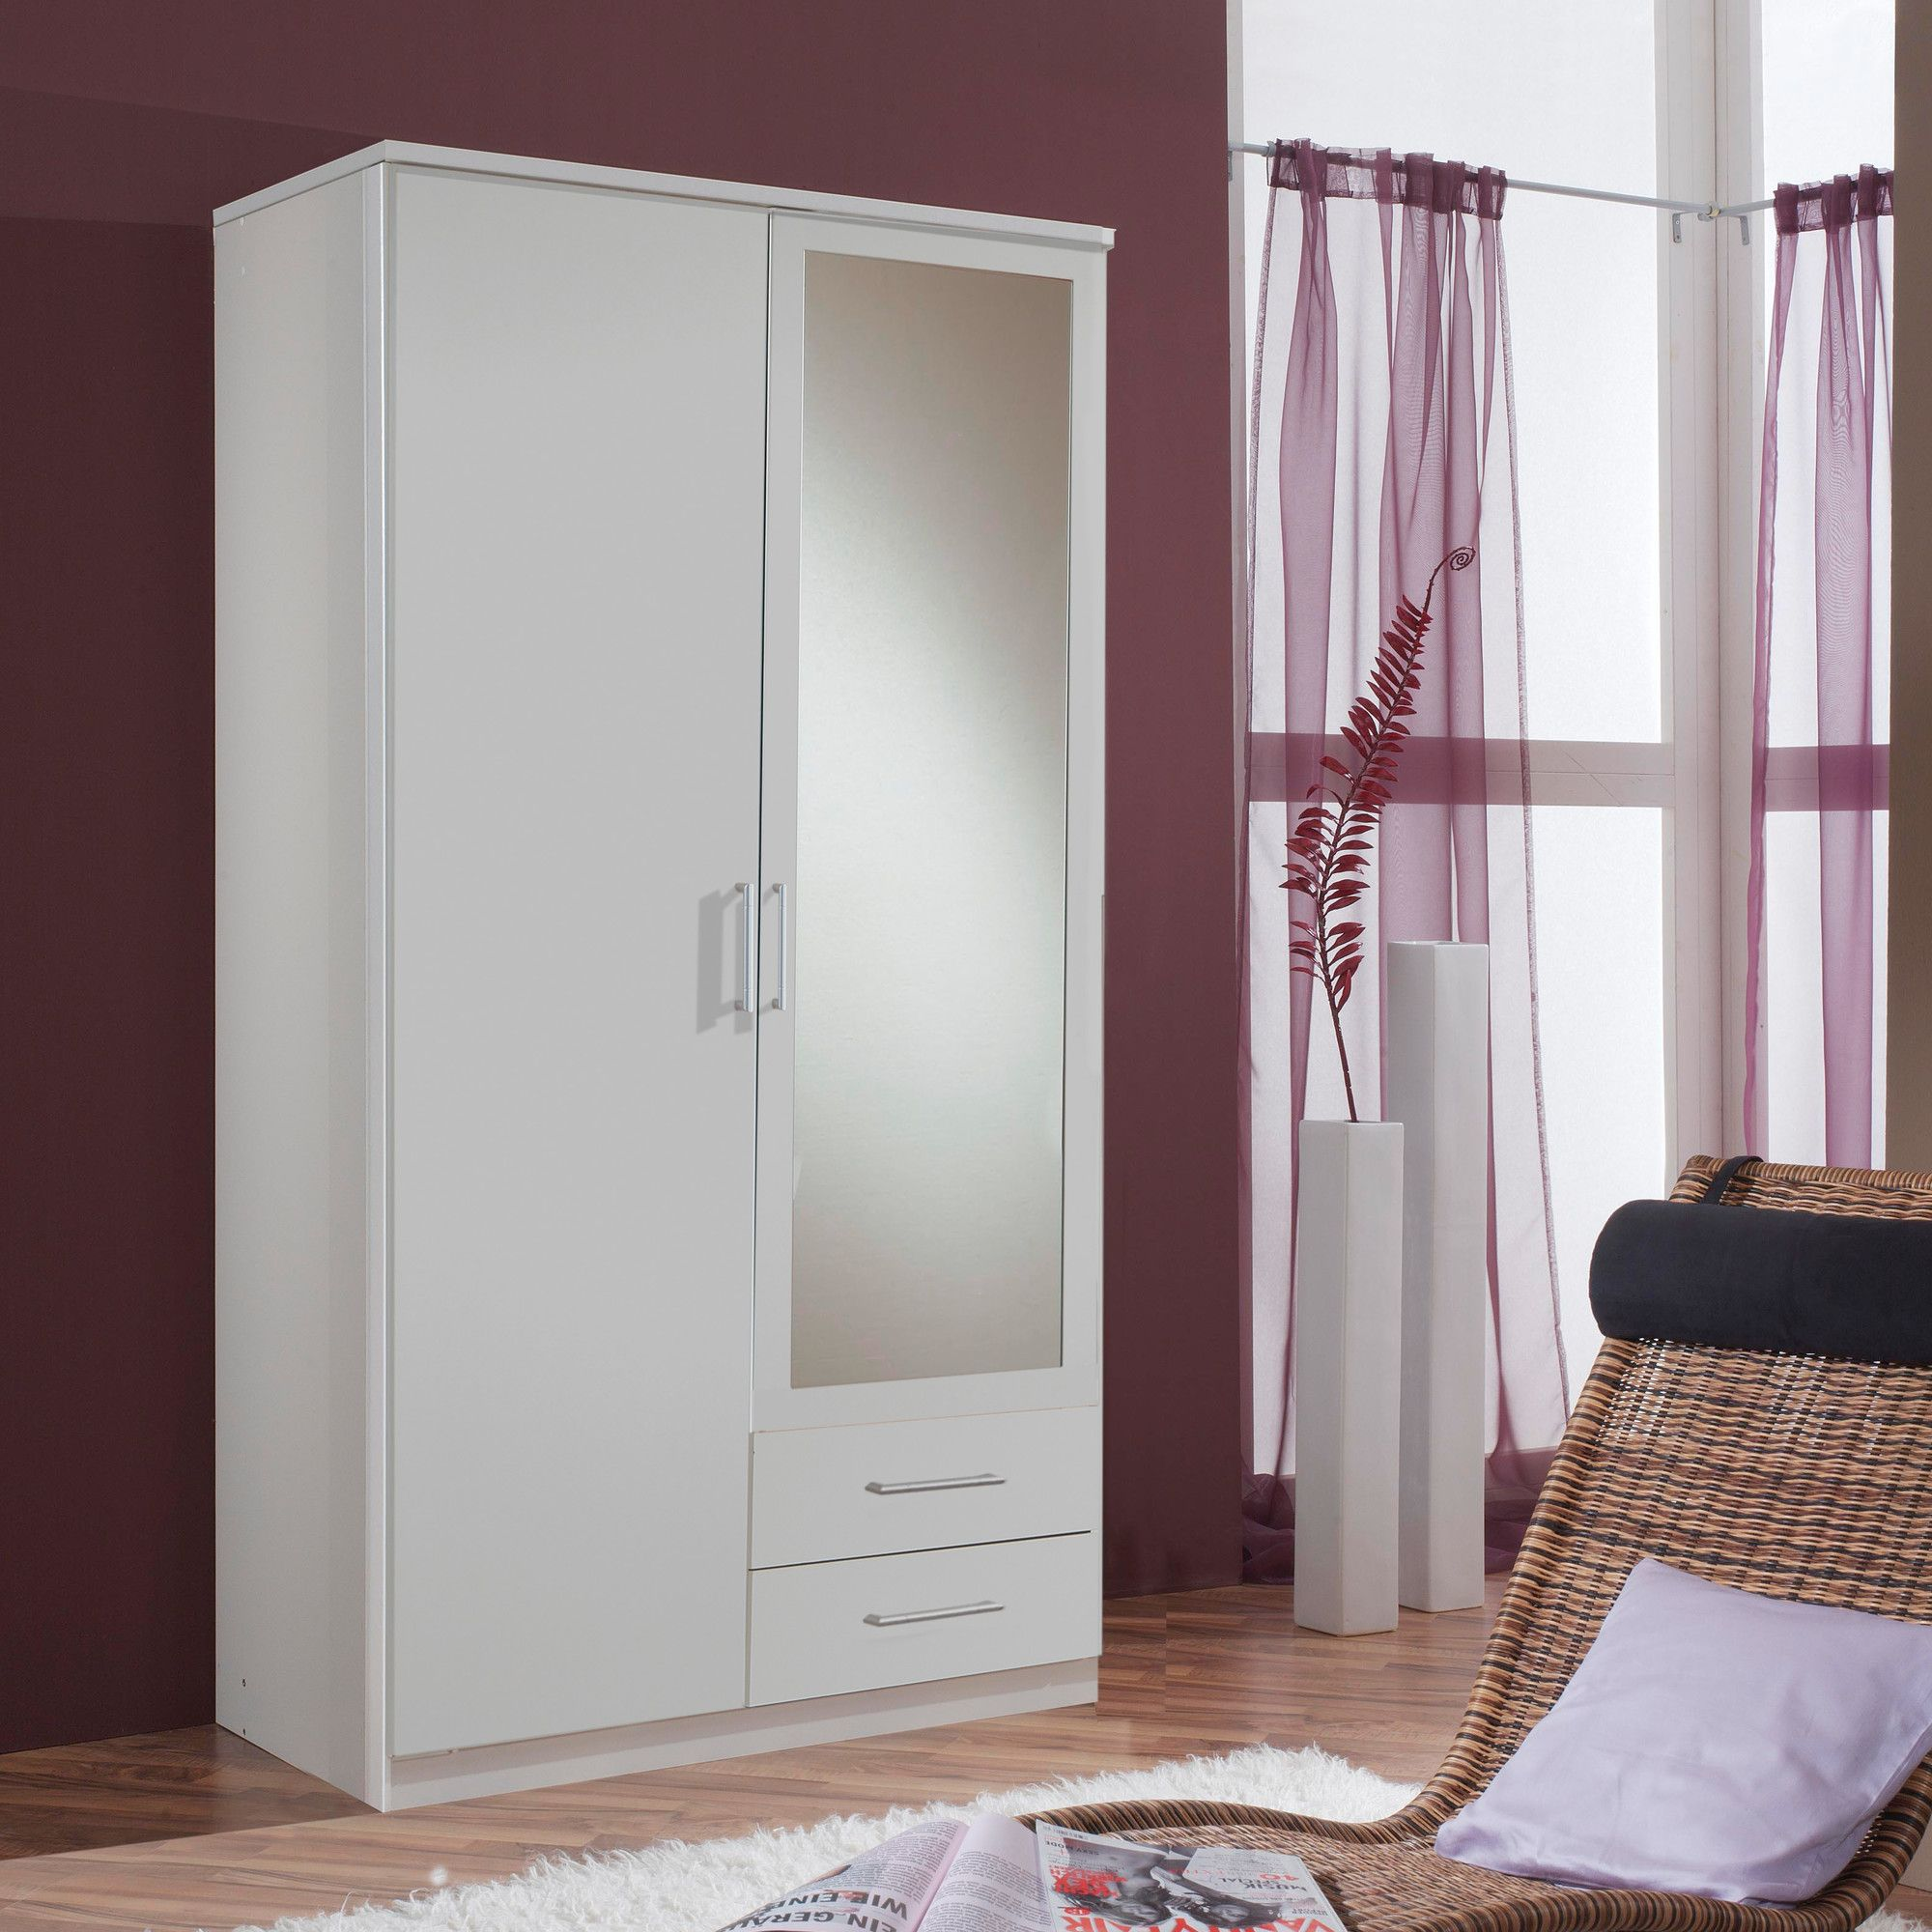 Amos Mann furniture Venice 2 Door 2 Drawer Wardrobe - White at Tesco Direct